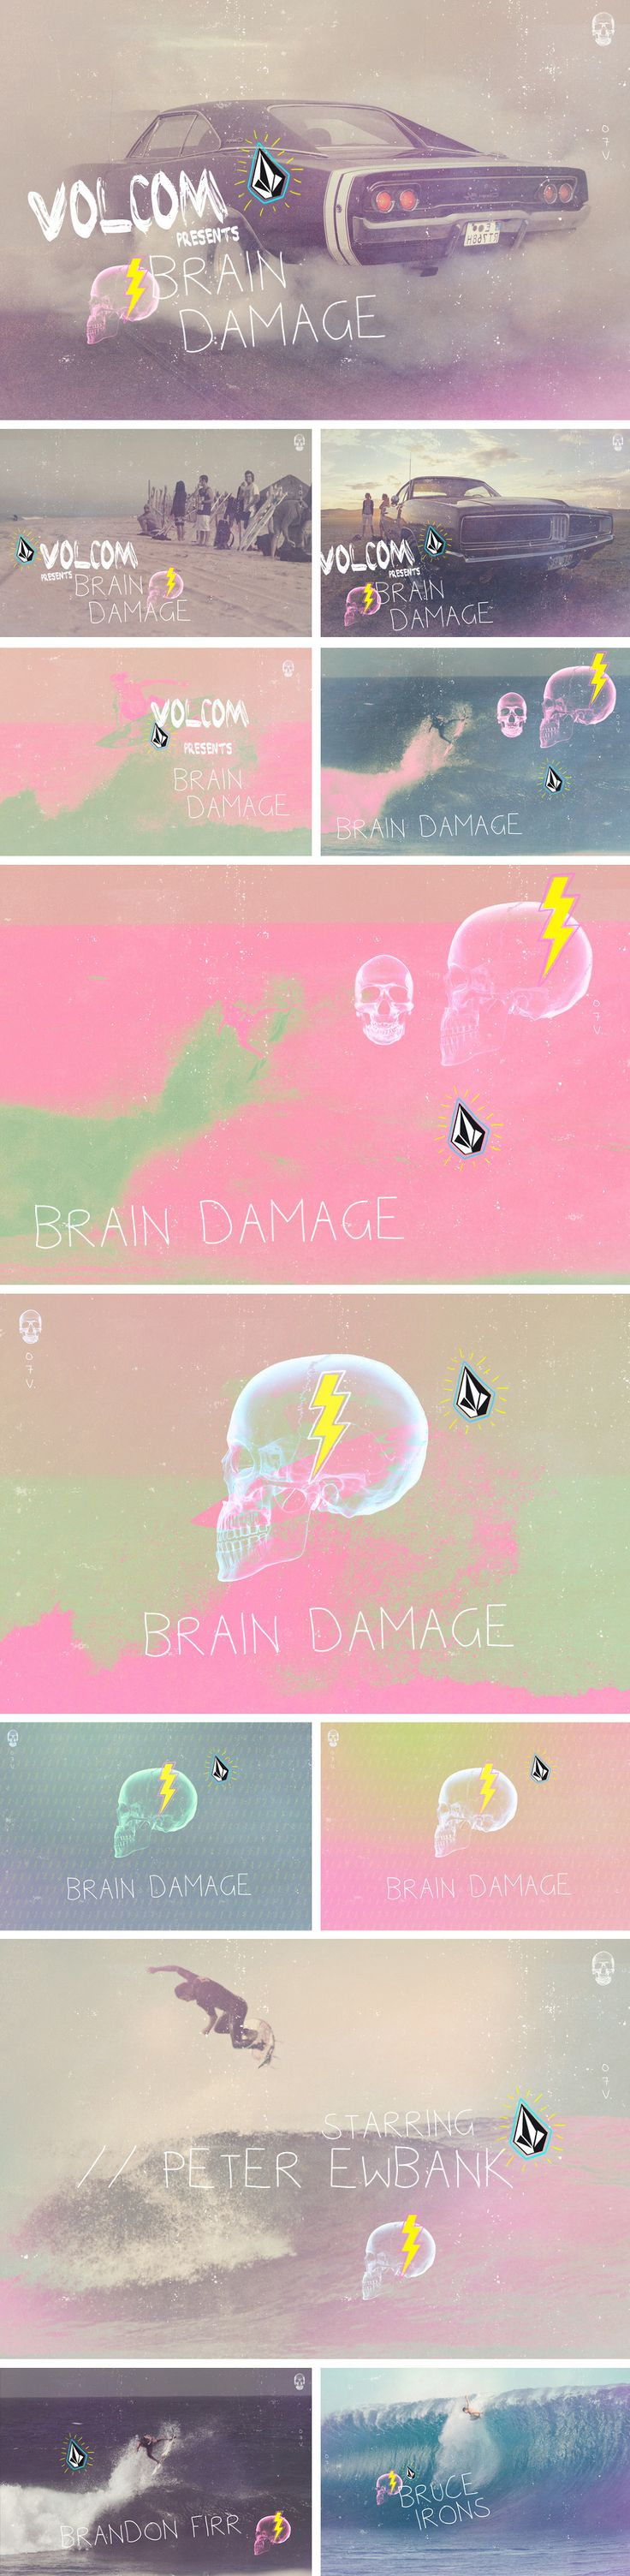 Volcom - Brain Damage  Key Visual pitch for Volcom's surf movie Brain Damage.